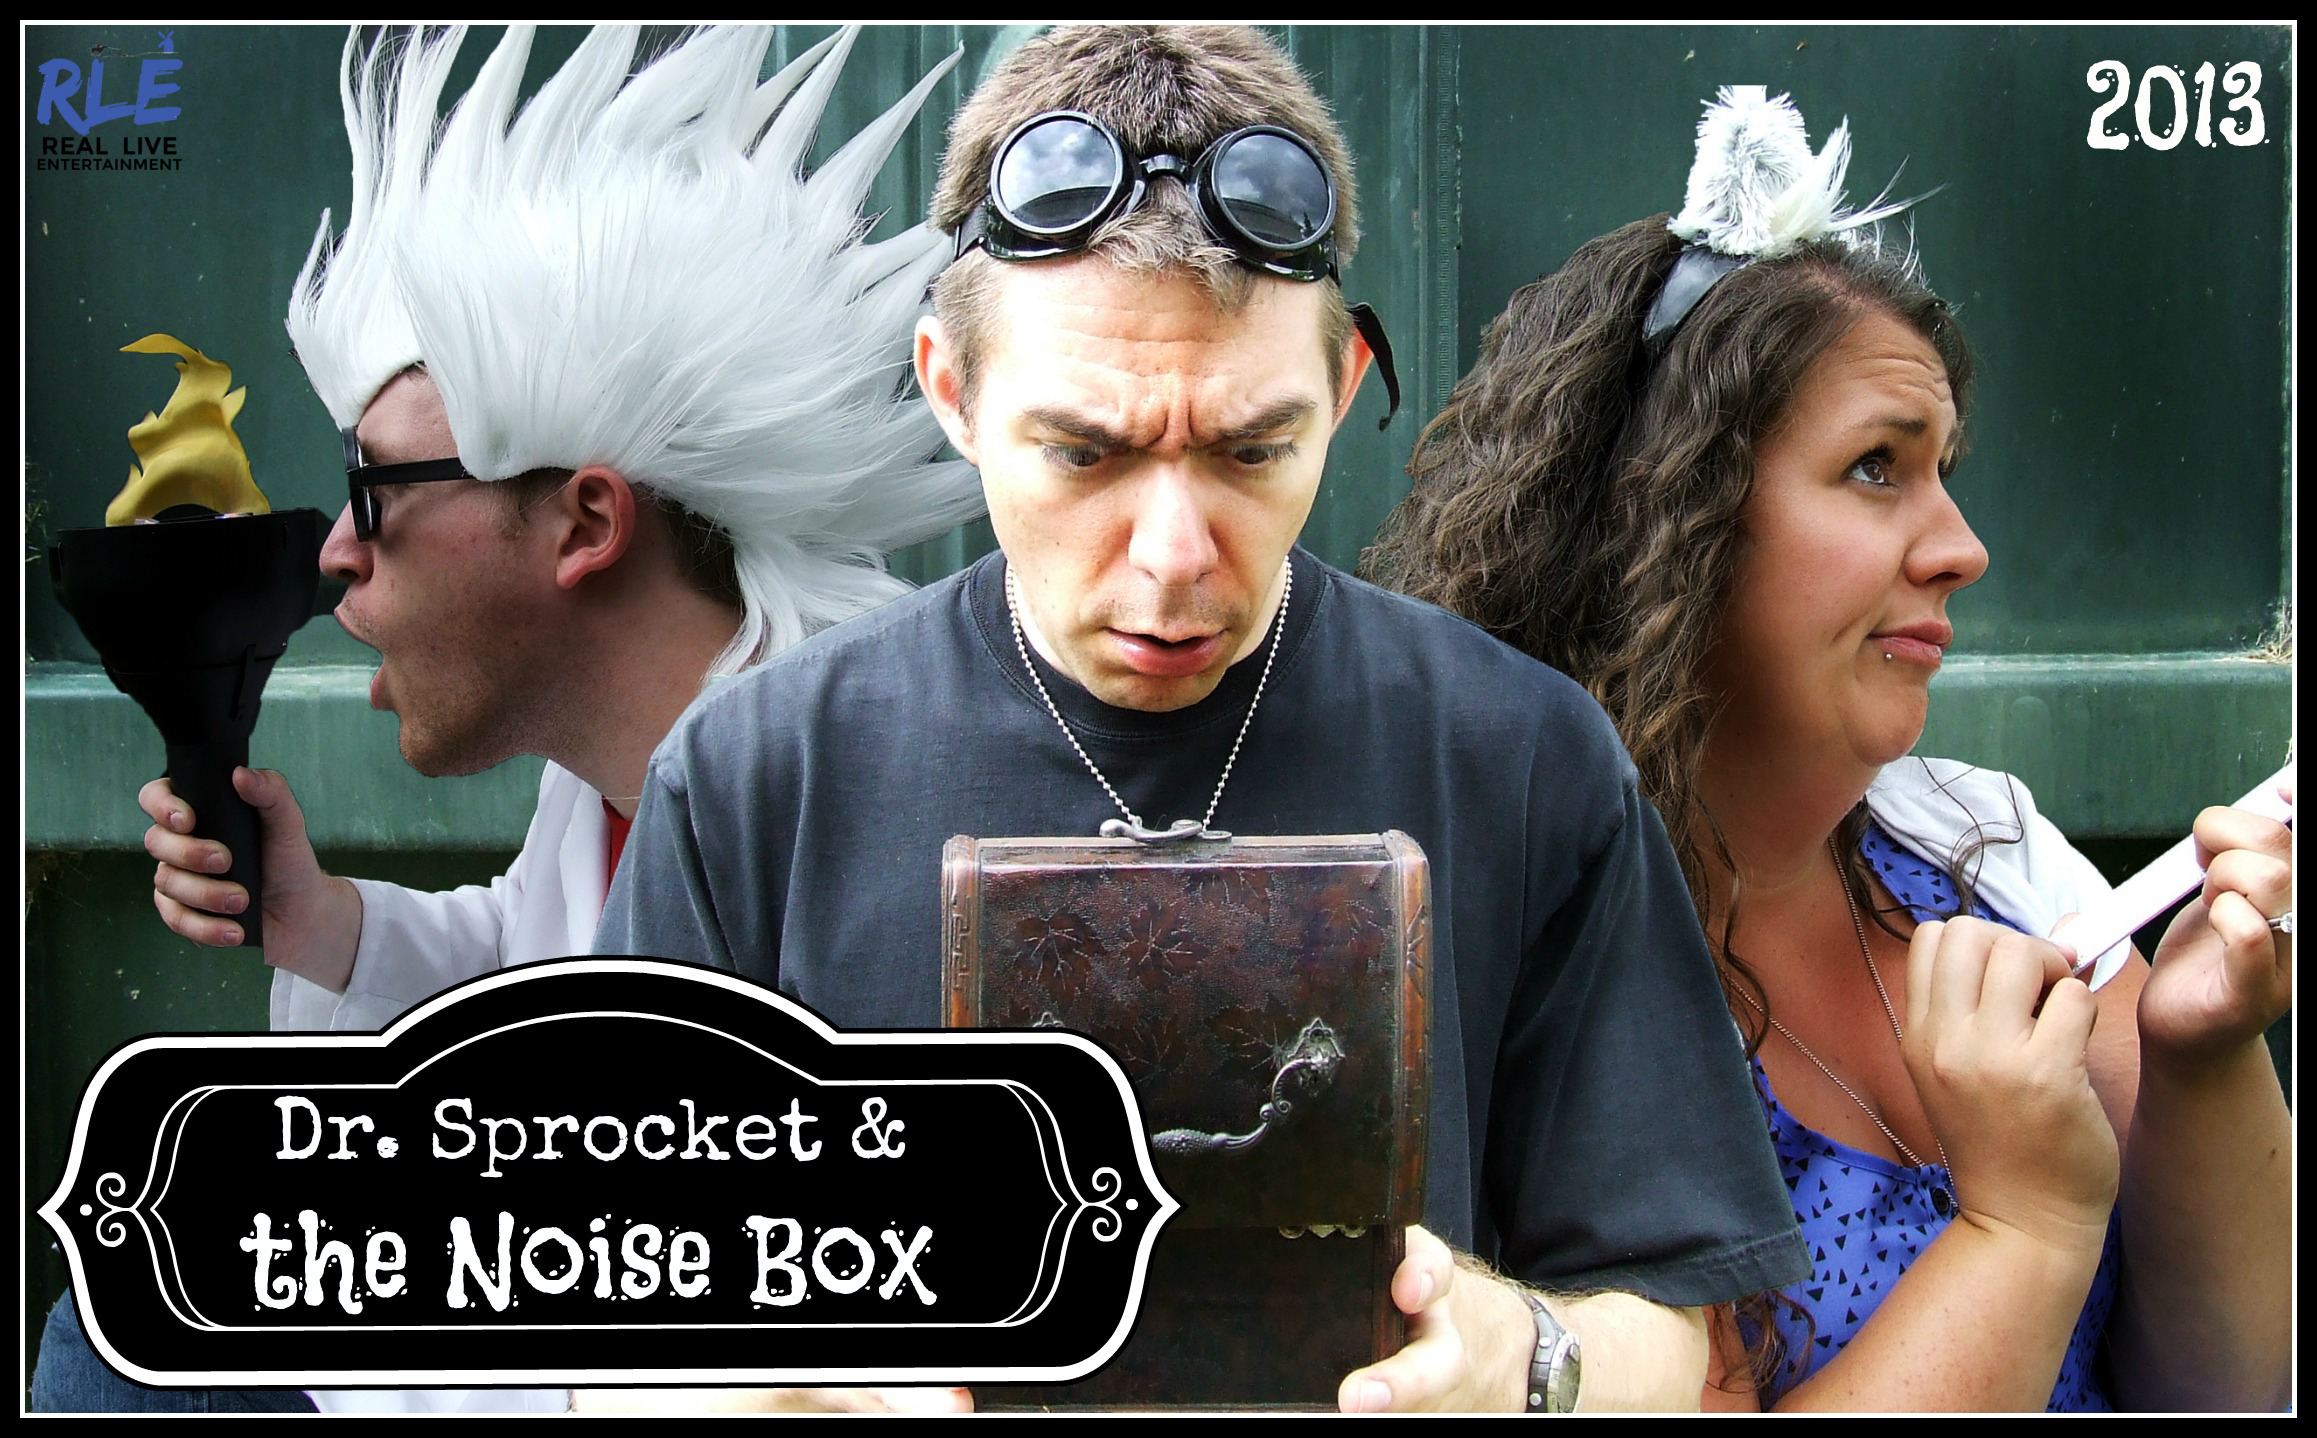 Dr. Sprocket & the Noise Box, 2013